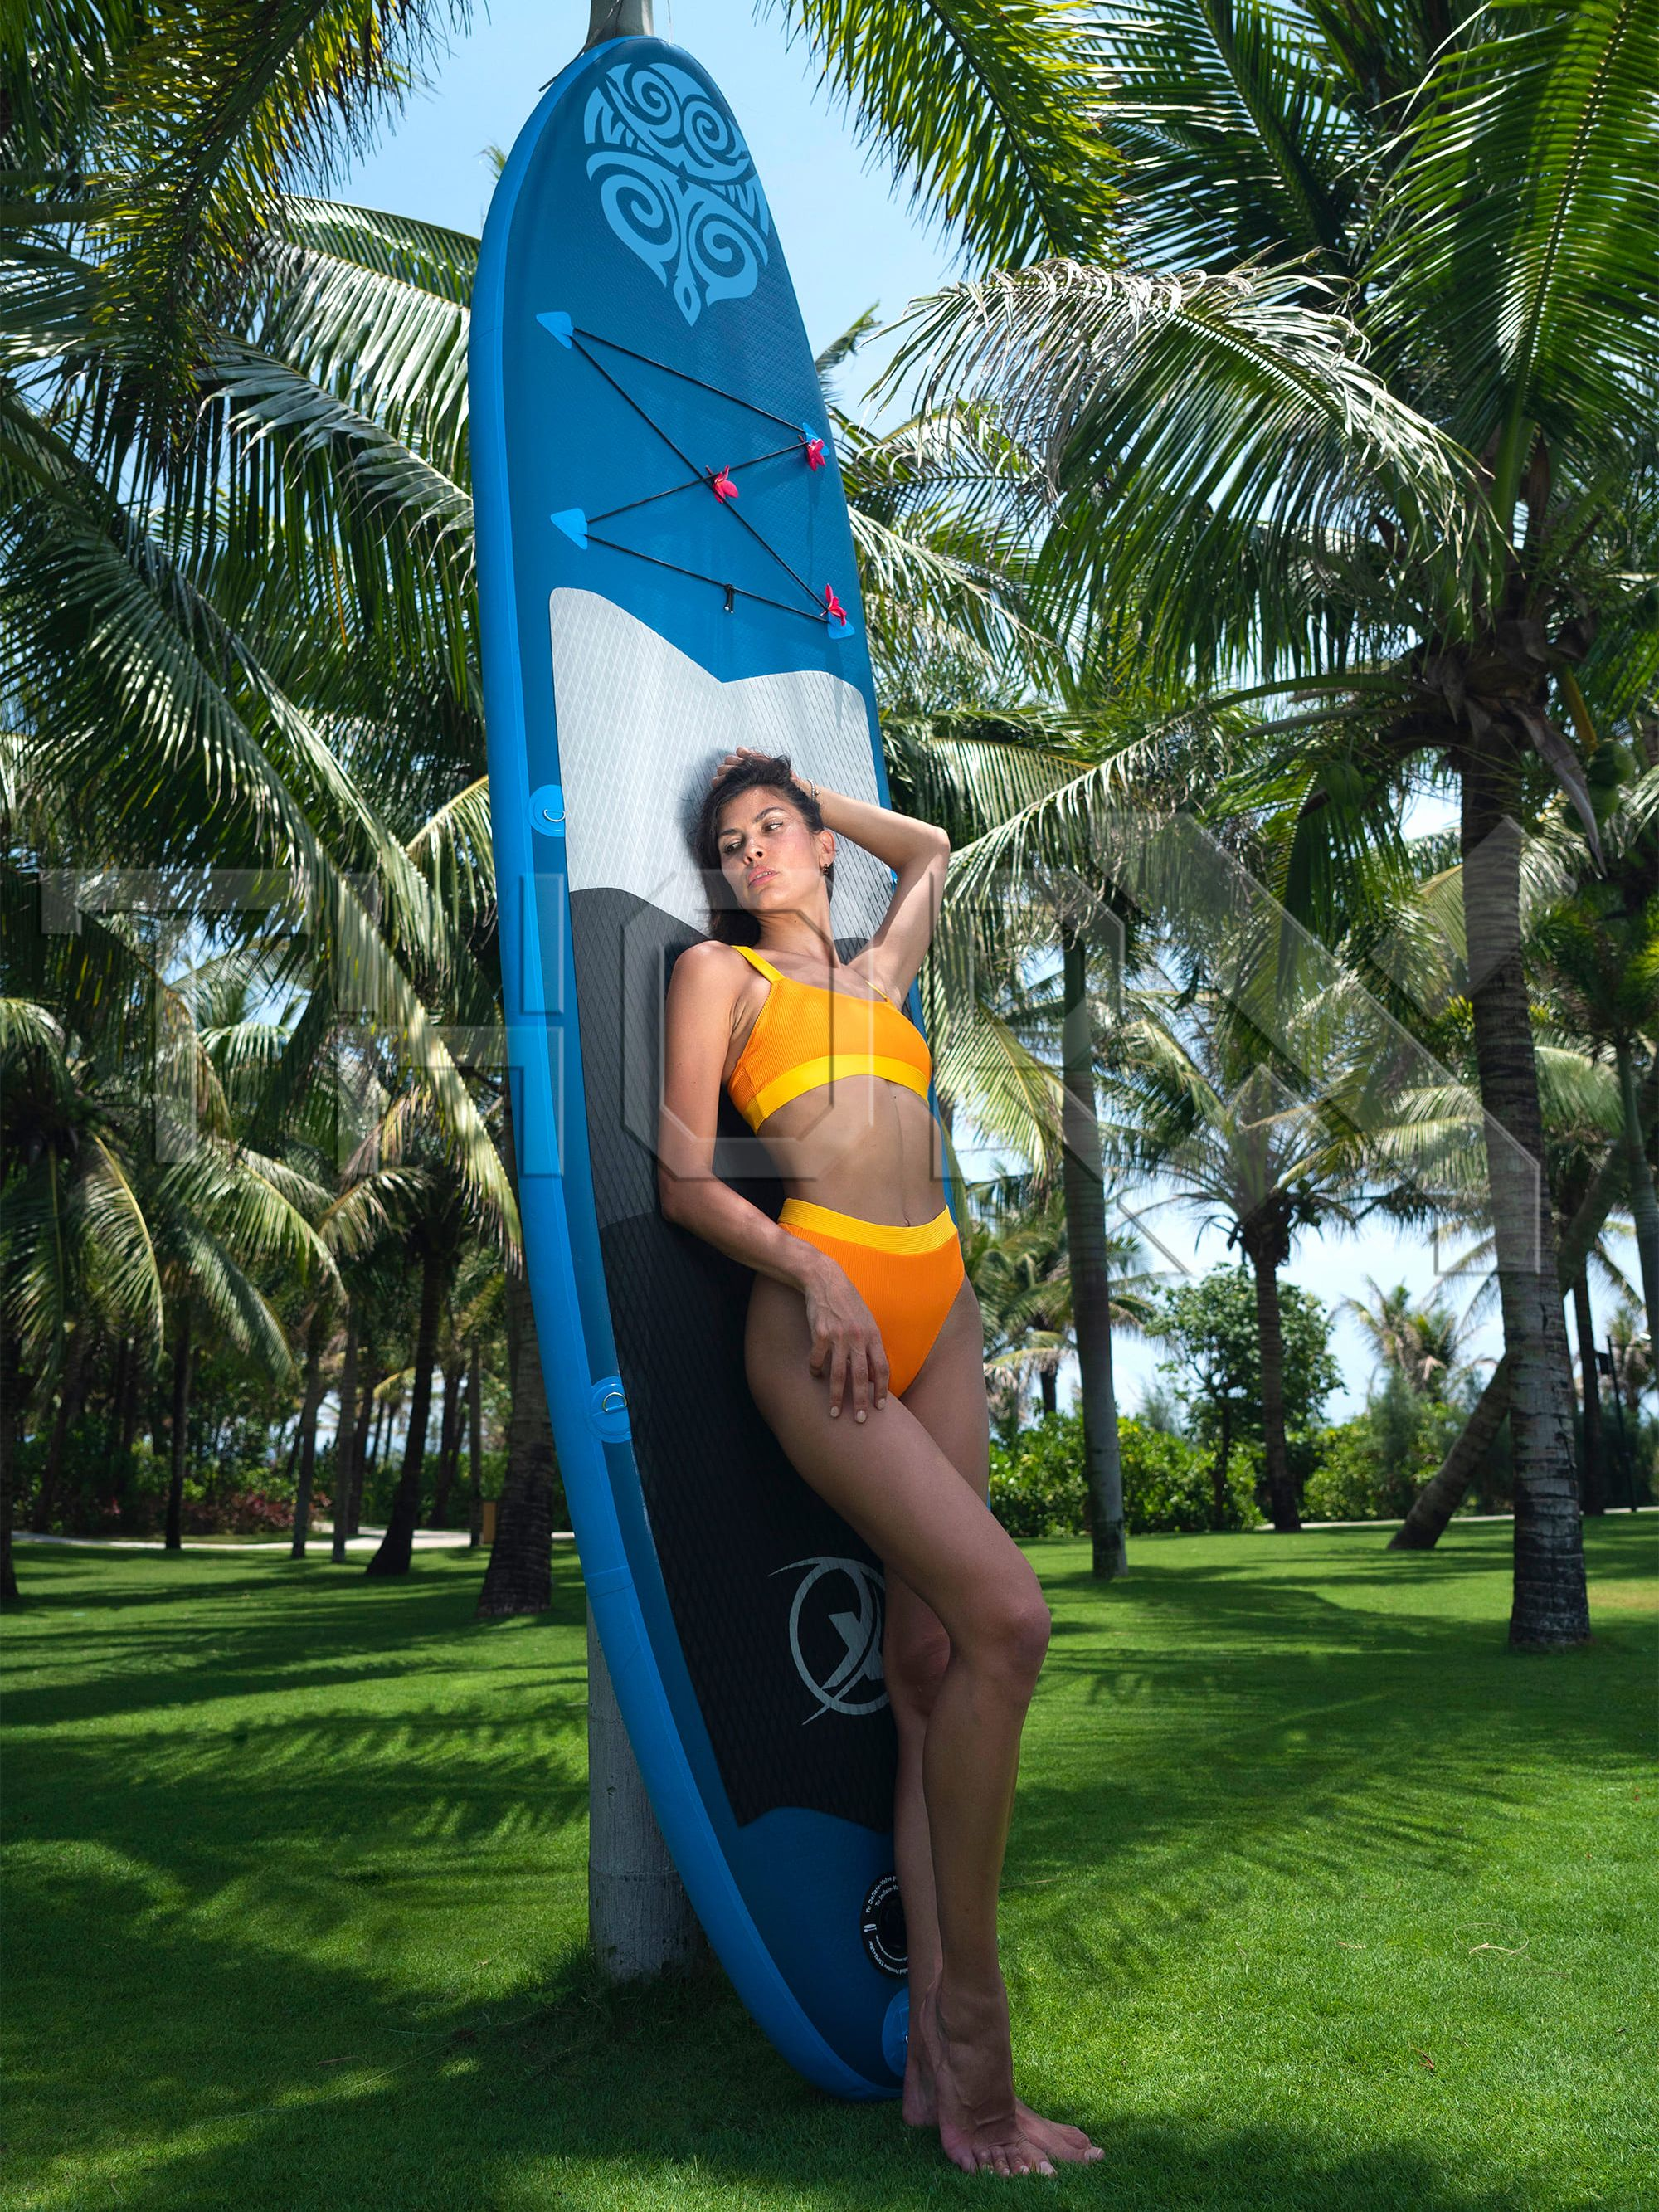 SUP330 Stand up Paddle Board 330x76x15cm, blue - SUP, surfboard, surf board and accessories